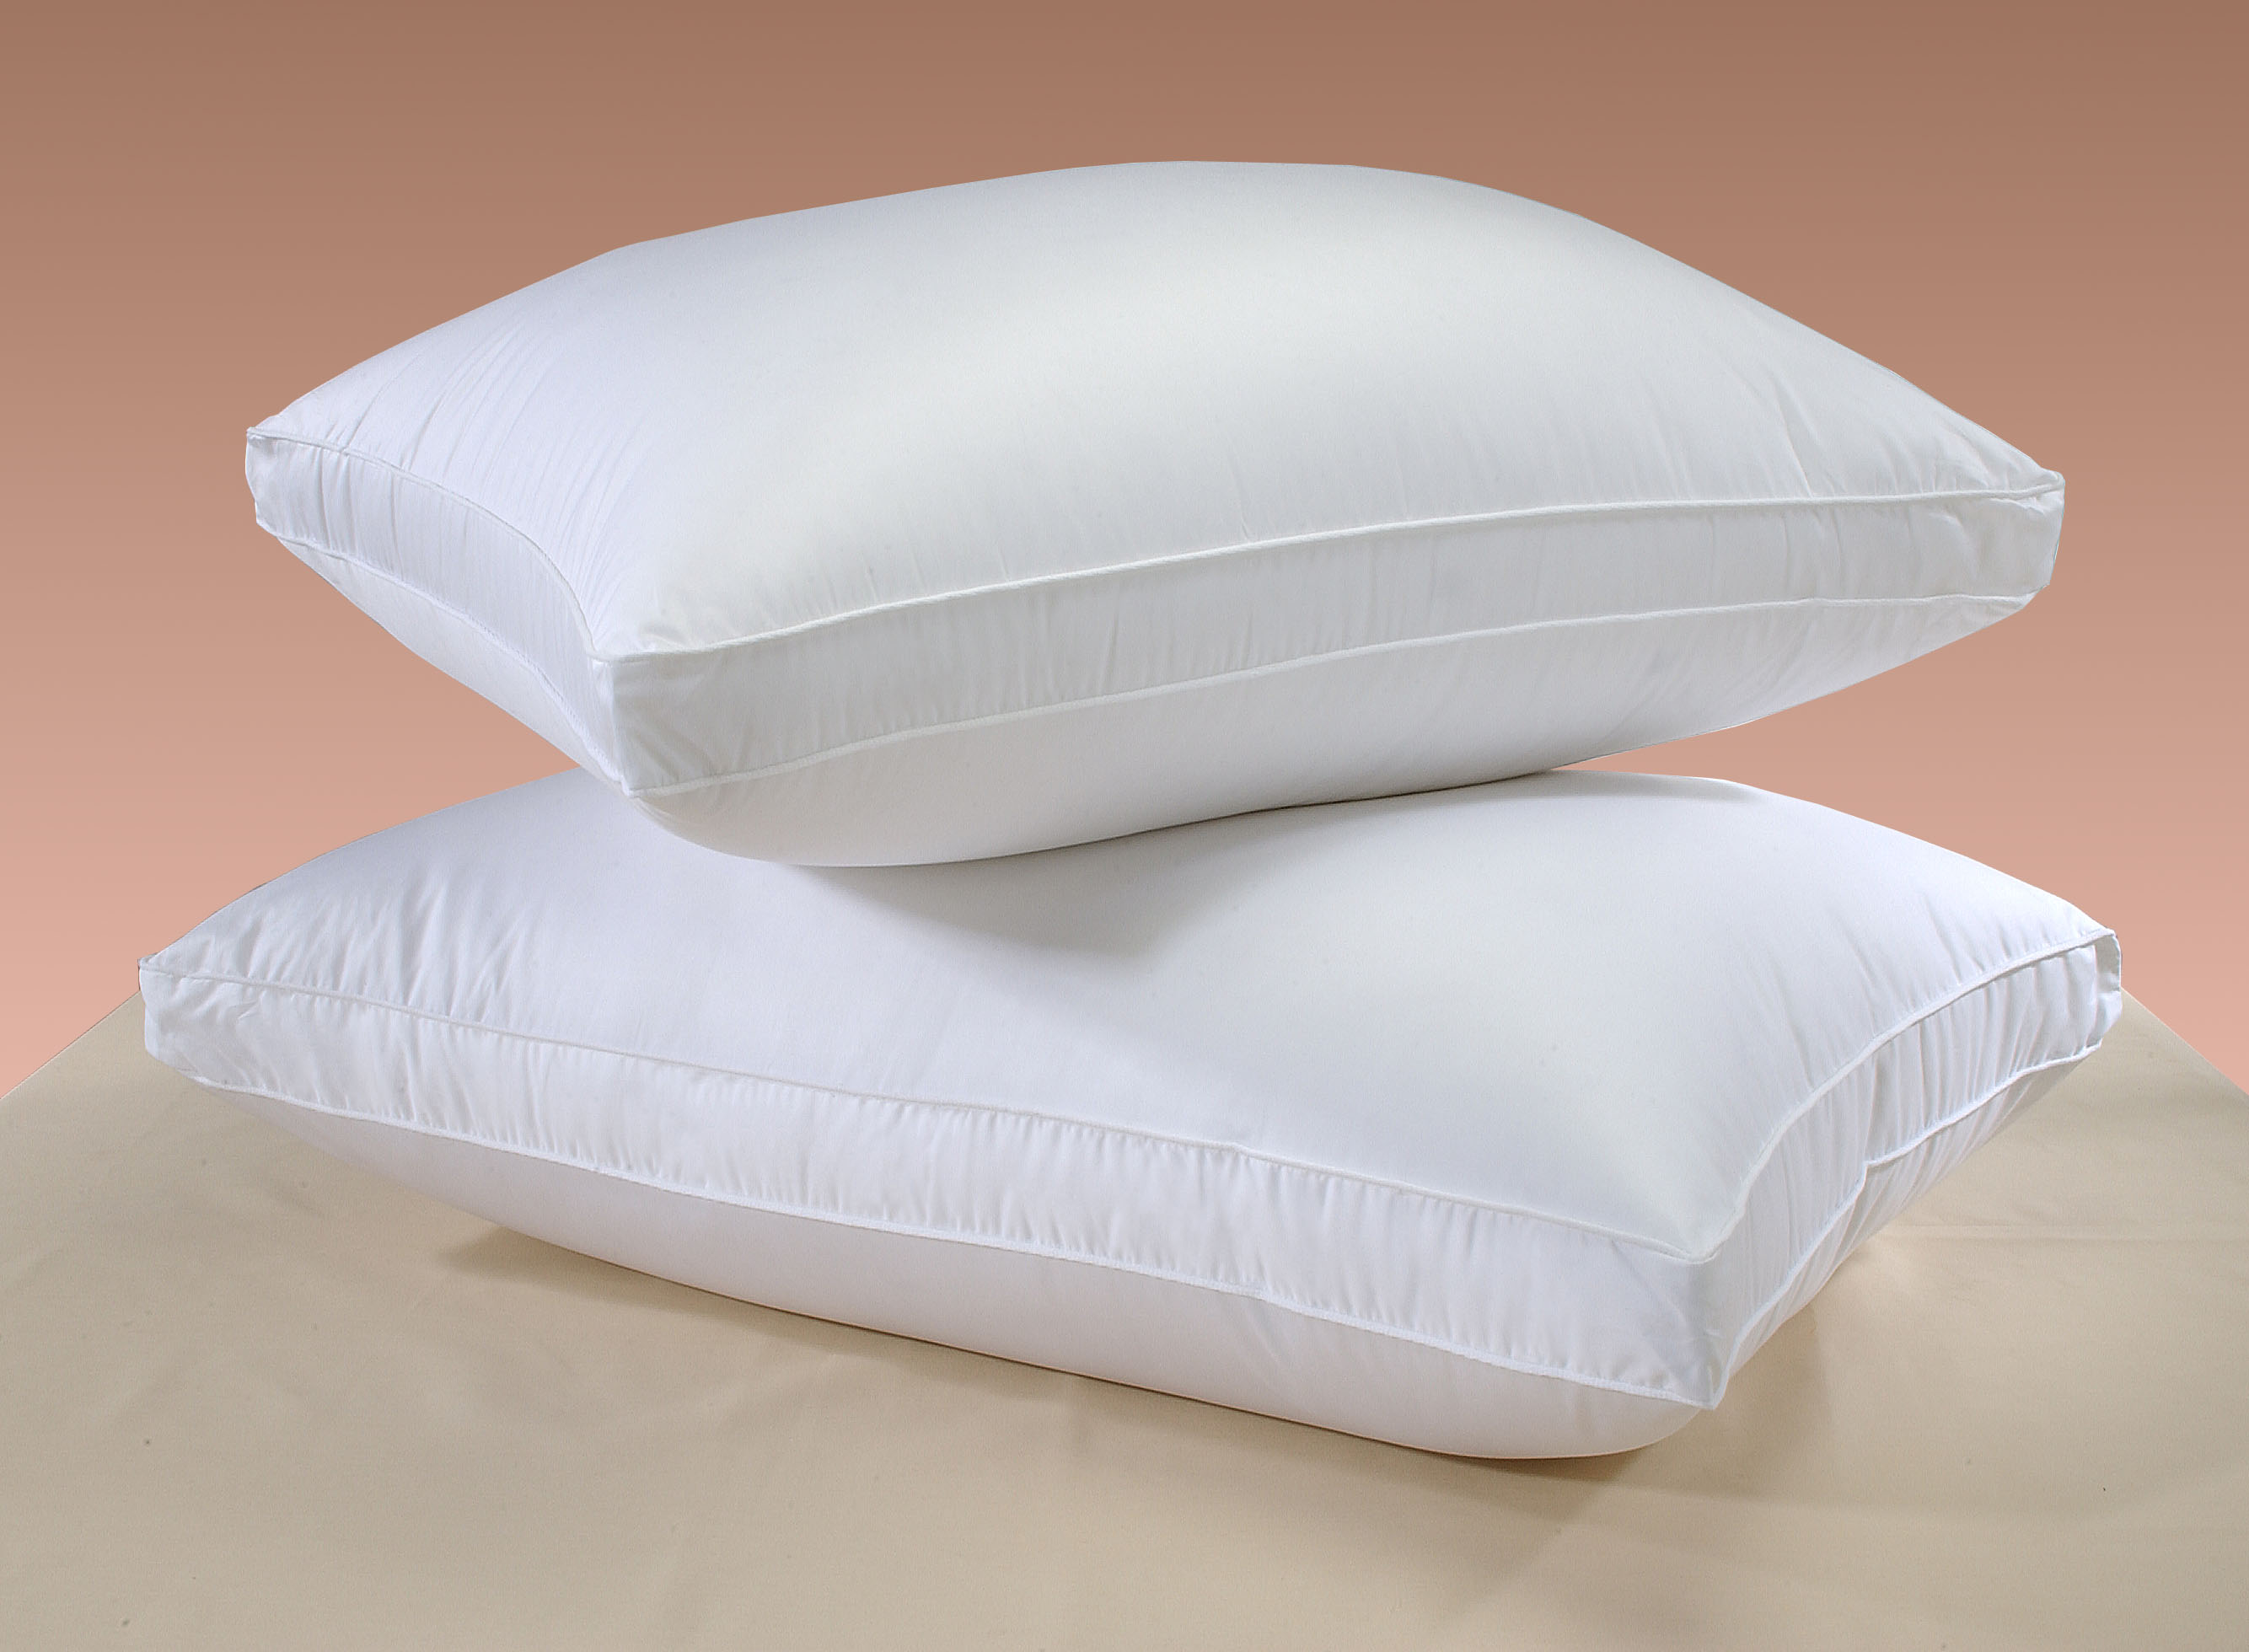 Our most comfortable goose down pillow, among other discount down